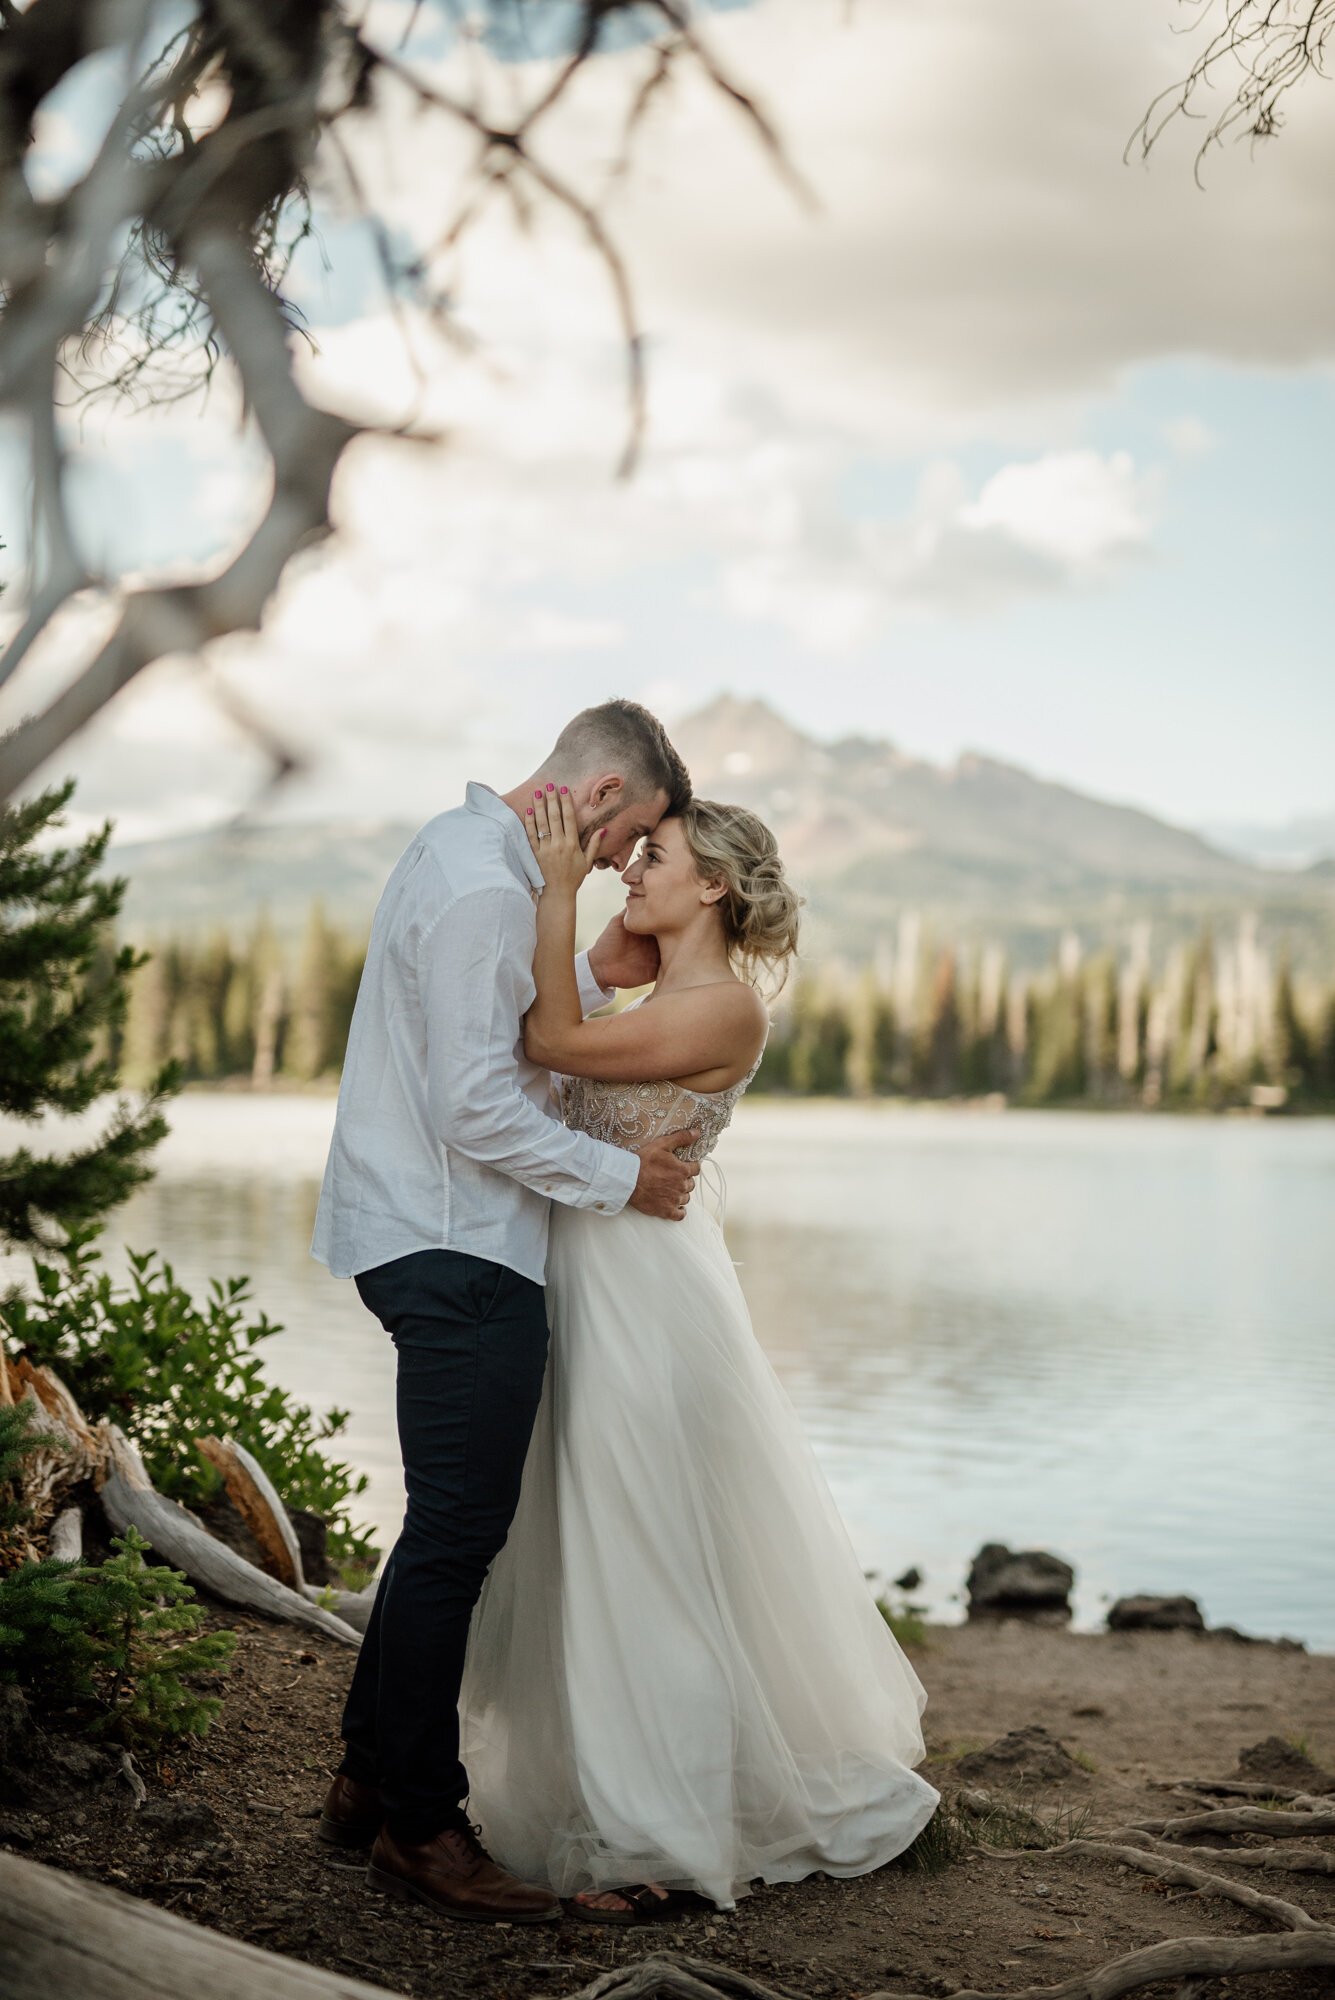 Aaron and Taryn embrace on their wedding day in front of a dormant volcano in eastern Oregon. Sunset lights up the trees behind them.